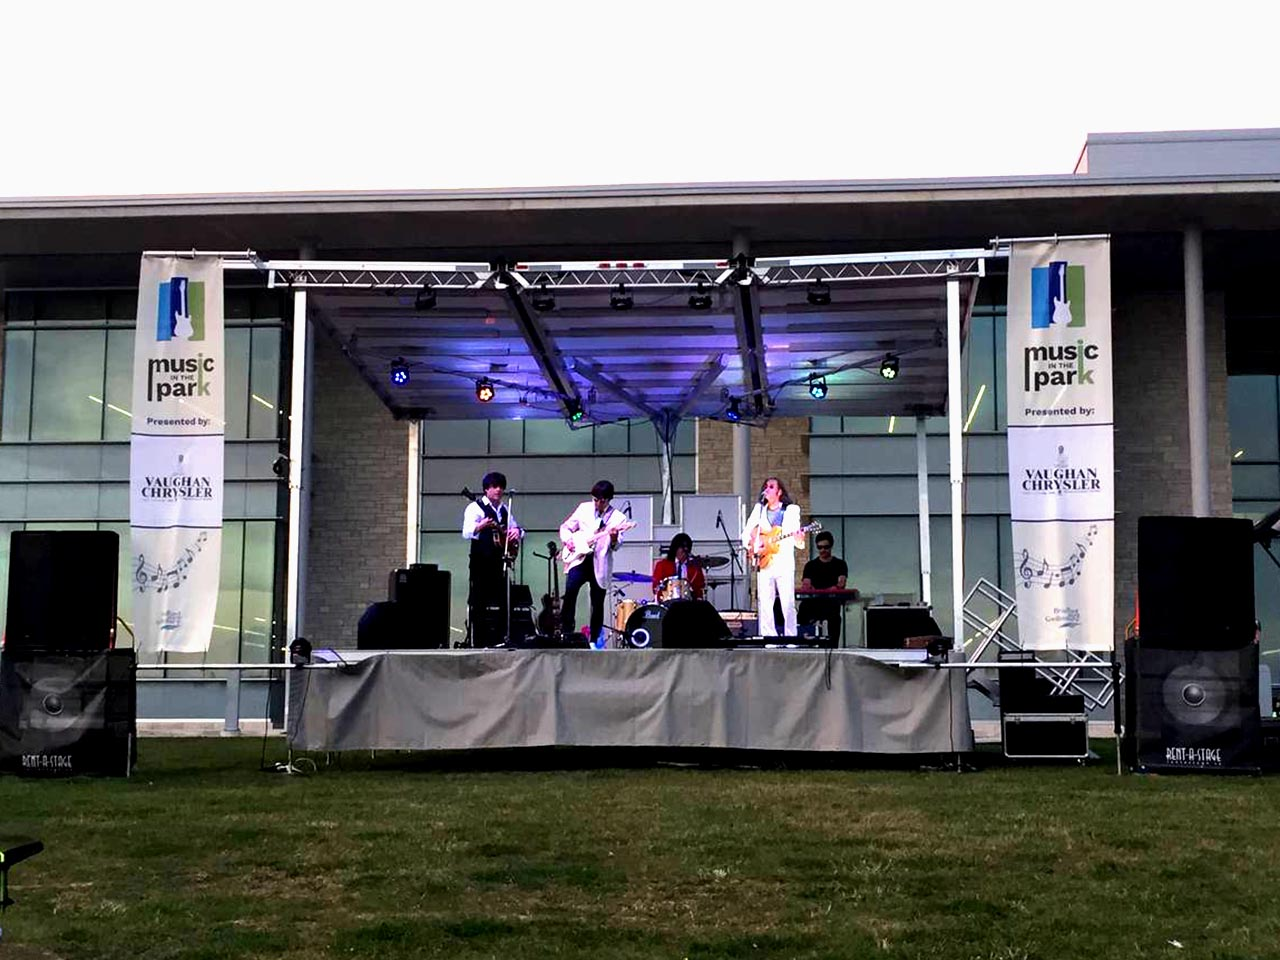 Rent a Stage SL50 - Music in the Park in Bradford